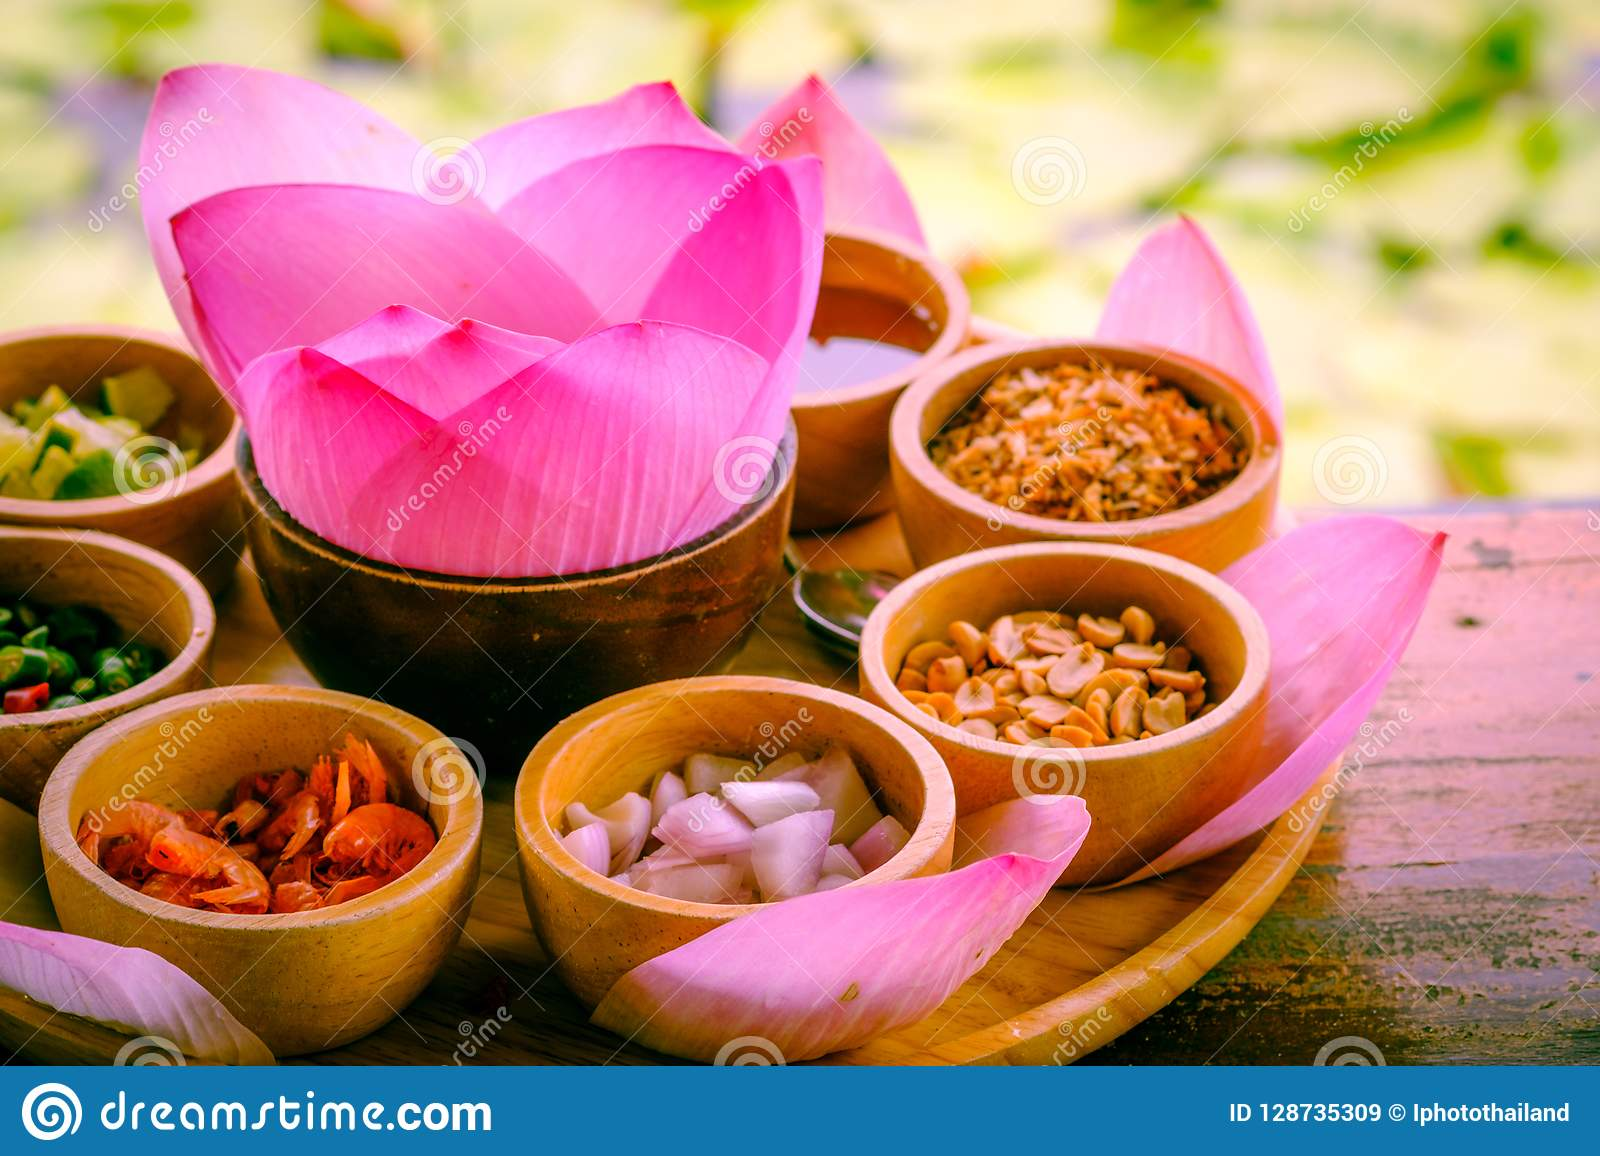 Pink Leaf Of Lotus Wrapped In A Word With Dried Lemon Coconut